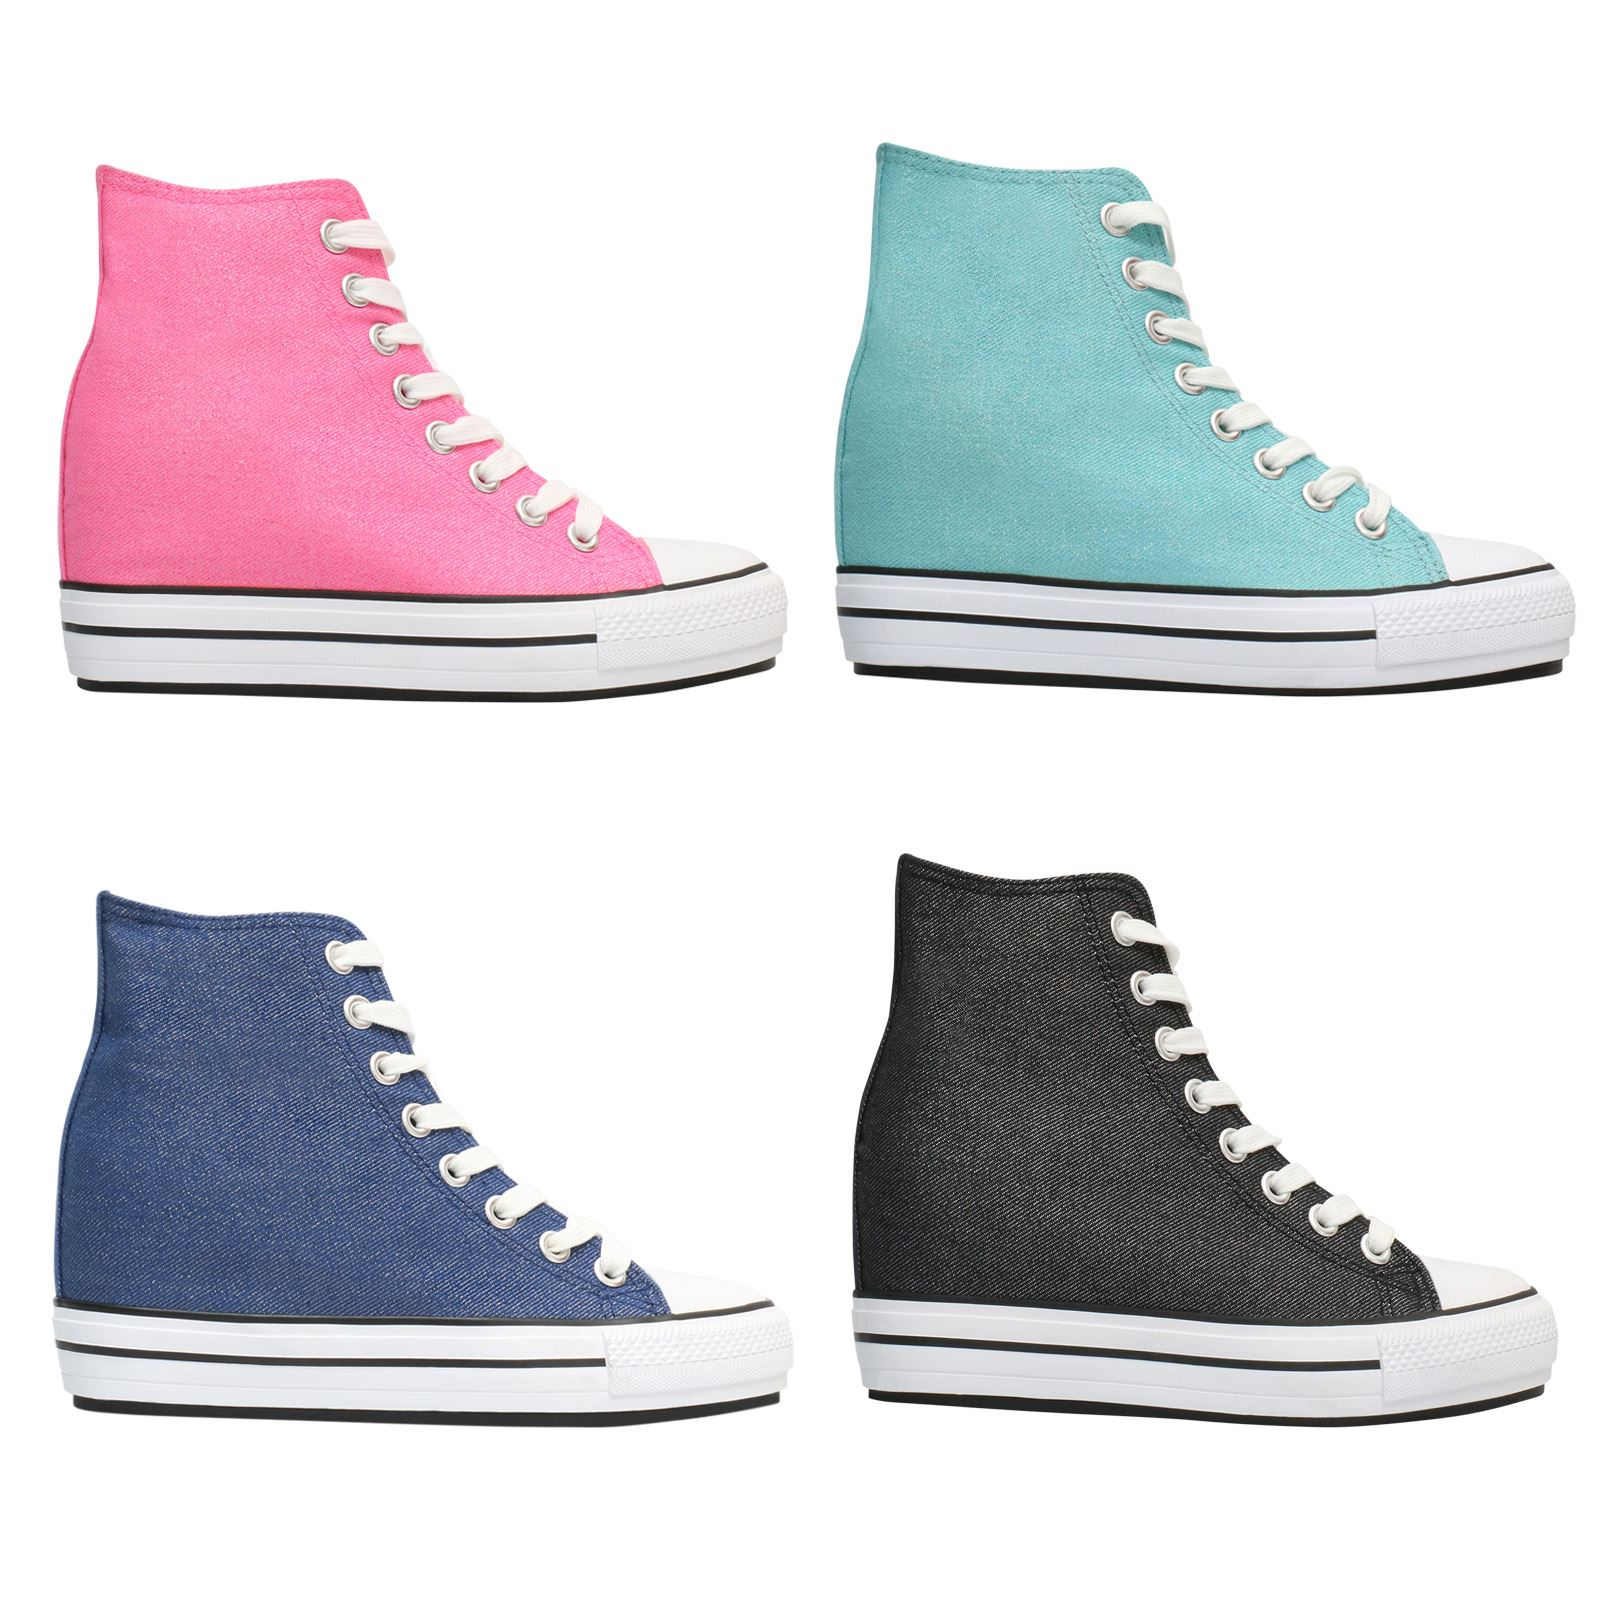 f58744914b5e Details about Women Classic High Tops Glitter Wedge Platform Trainers  Sneaker Ladies Shoes